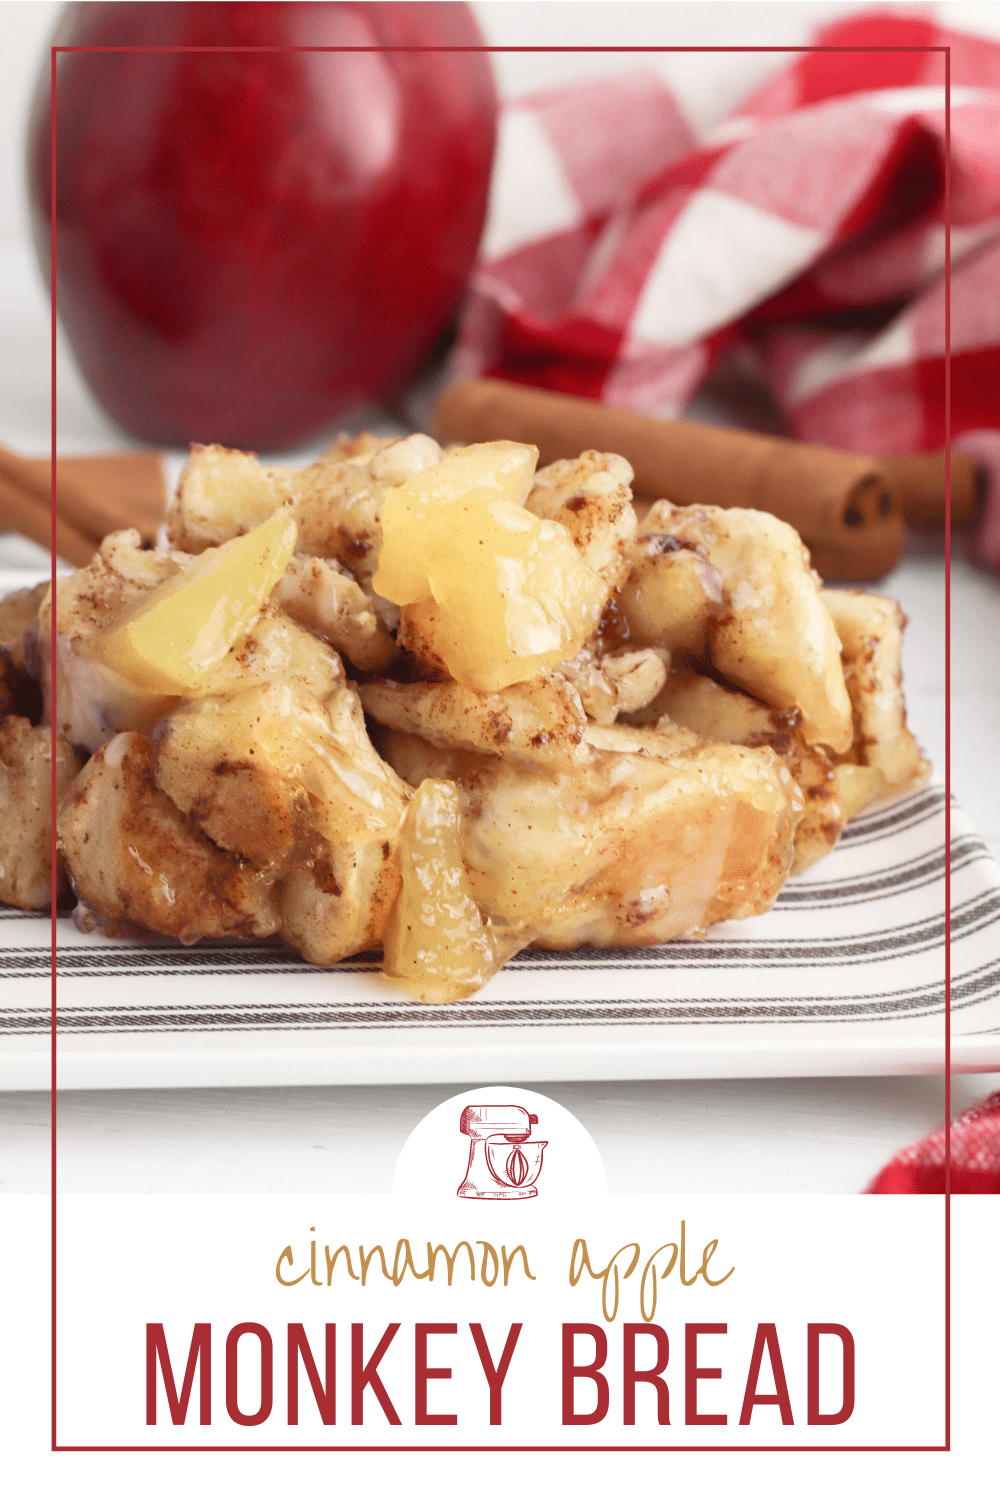 Made with two simple ingredients, this incredibly delicious loaf of Cinnamon Apple Monkey Bread is packed full of cinnamon apple gooey goodness!